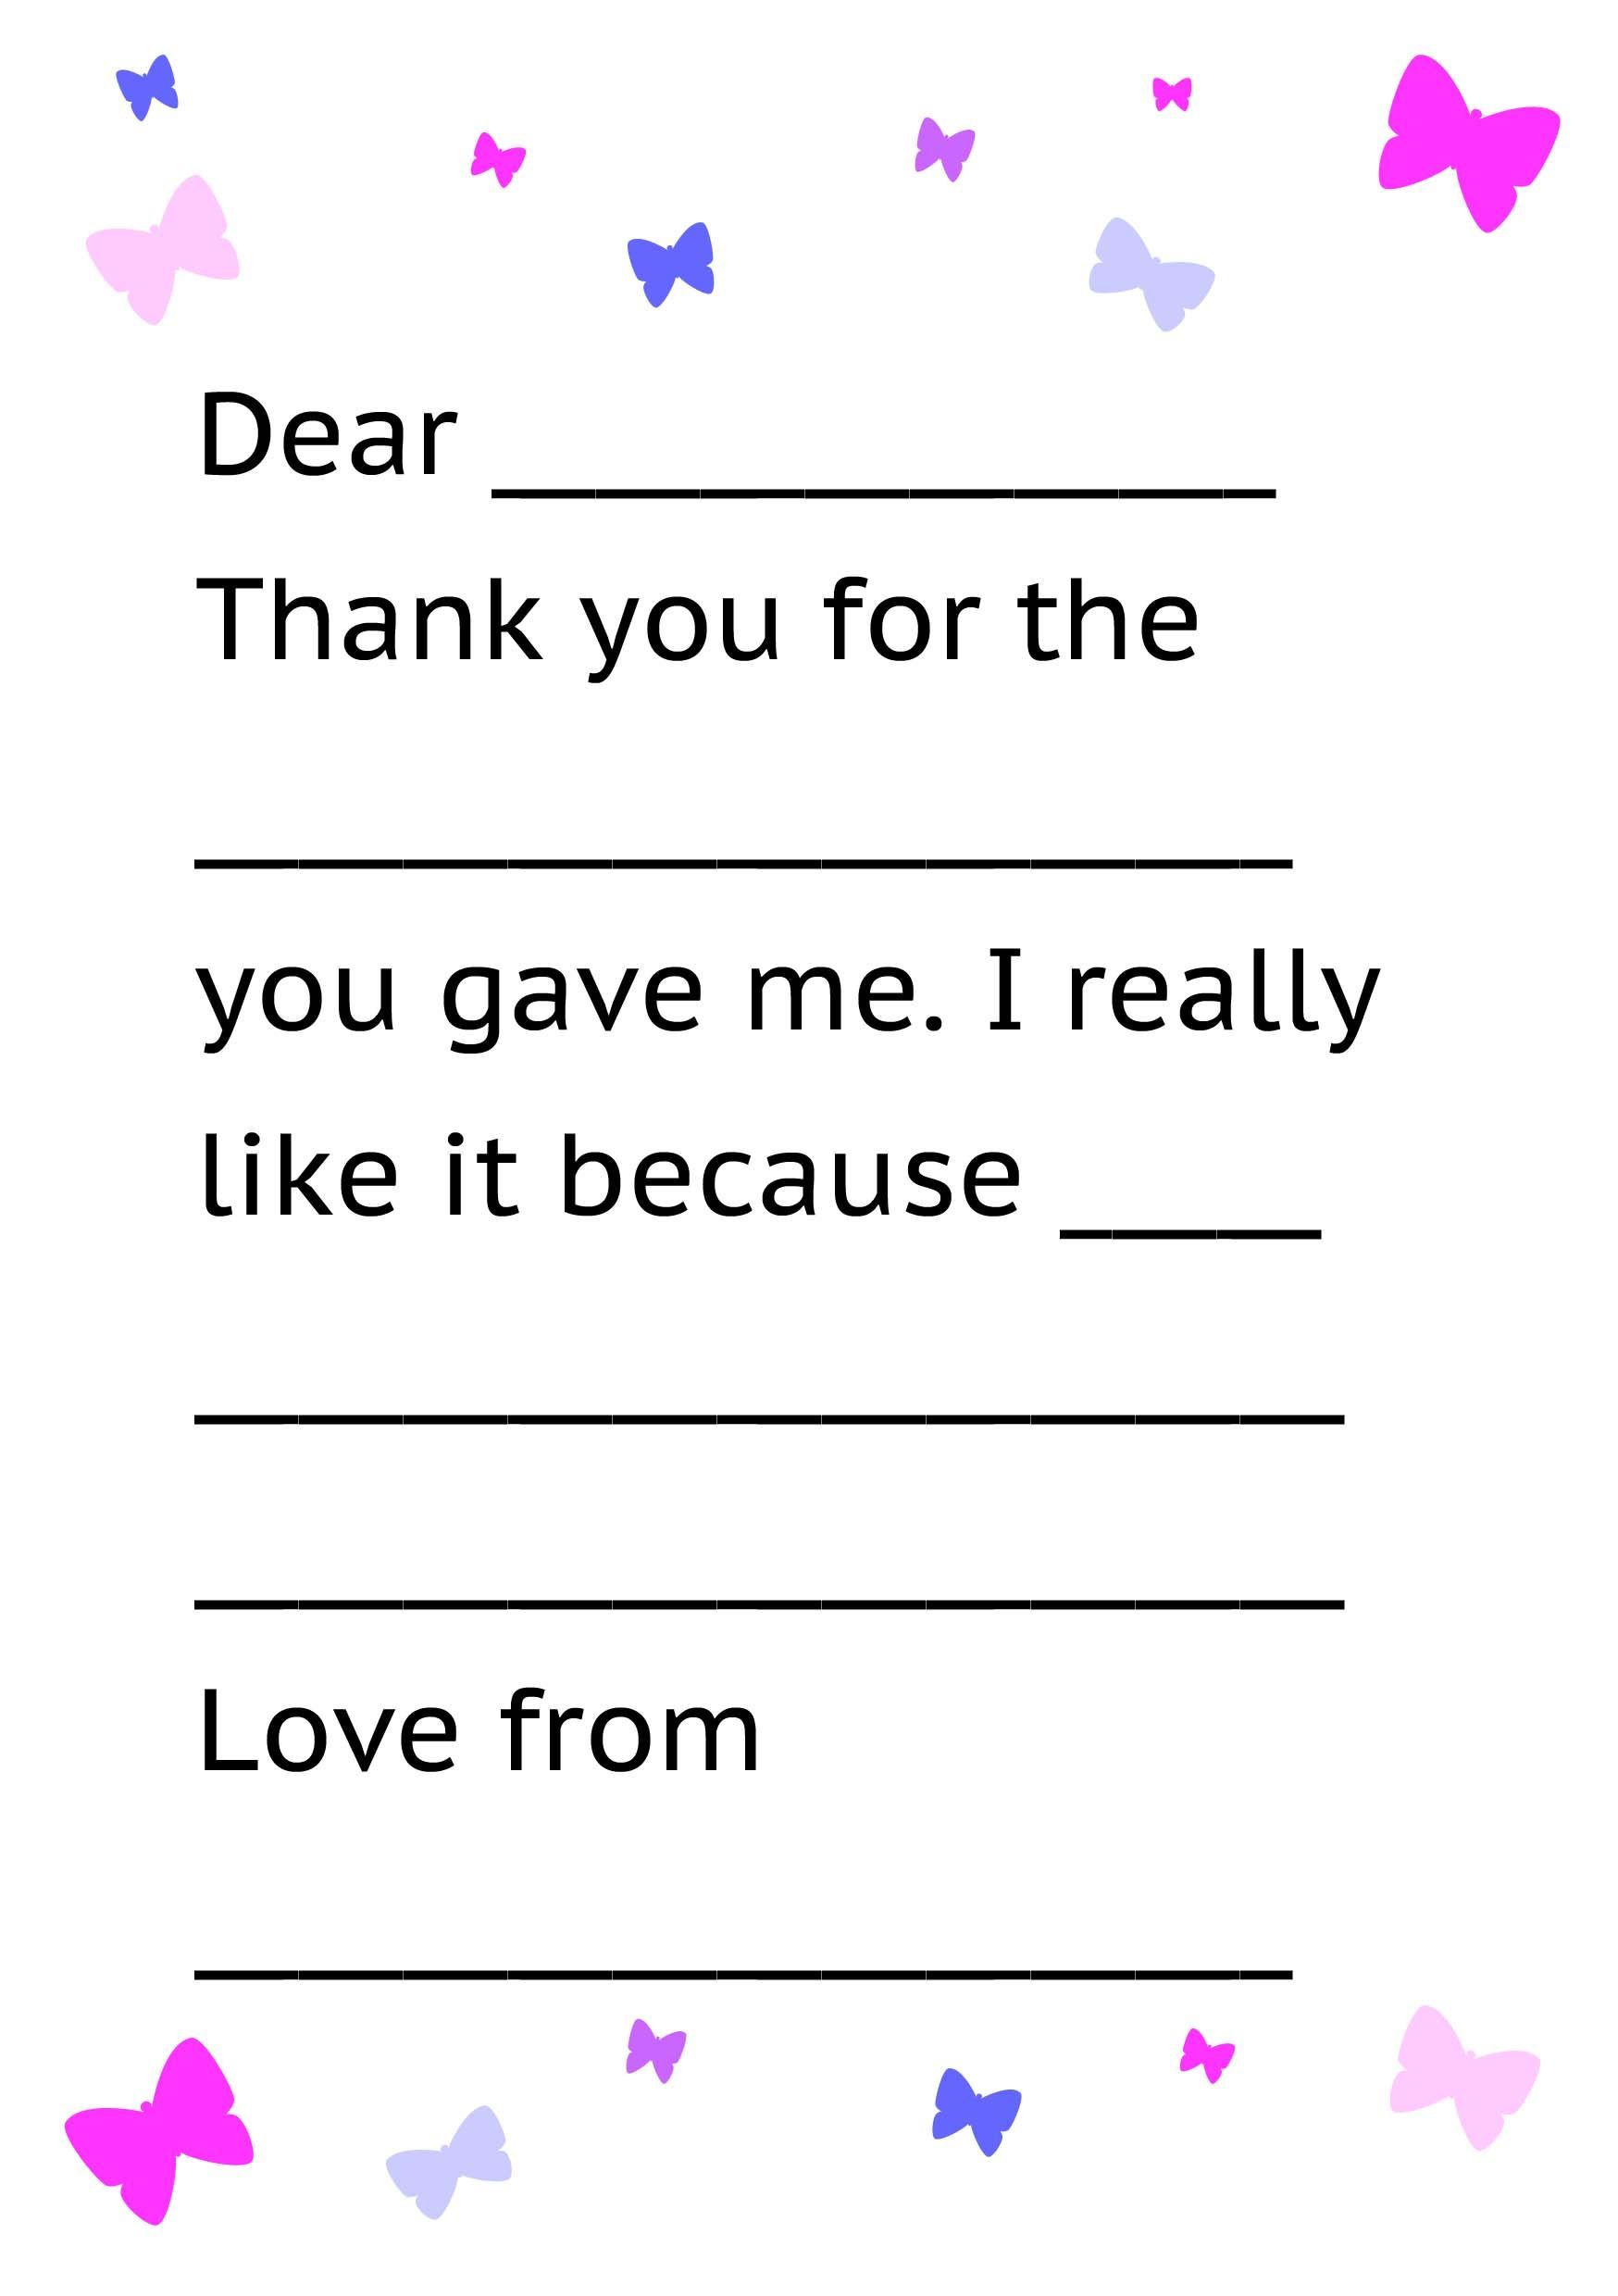 Related Image Letter Writing Forms Pinterest Thank You Letter